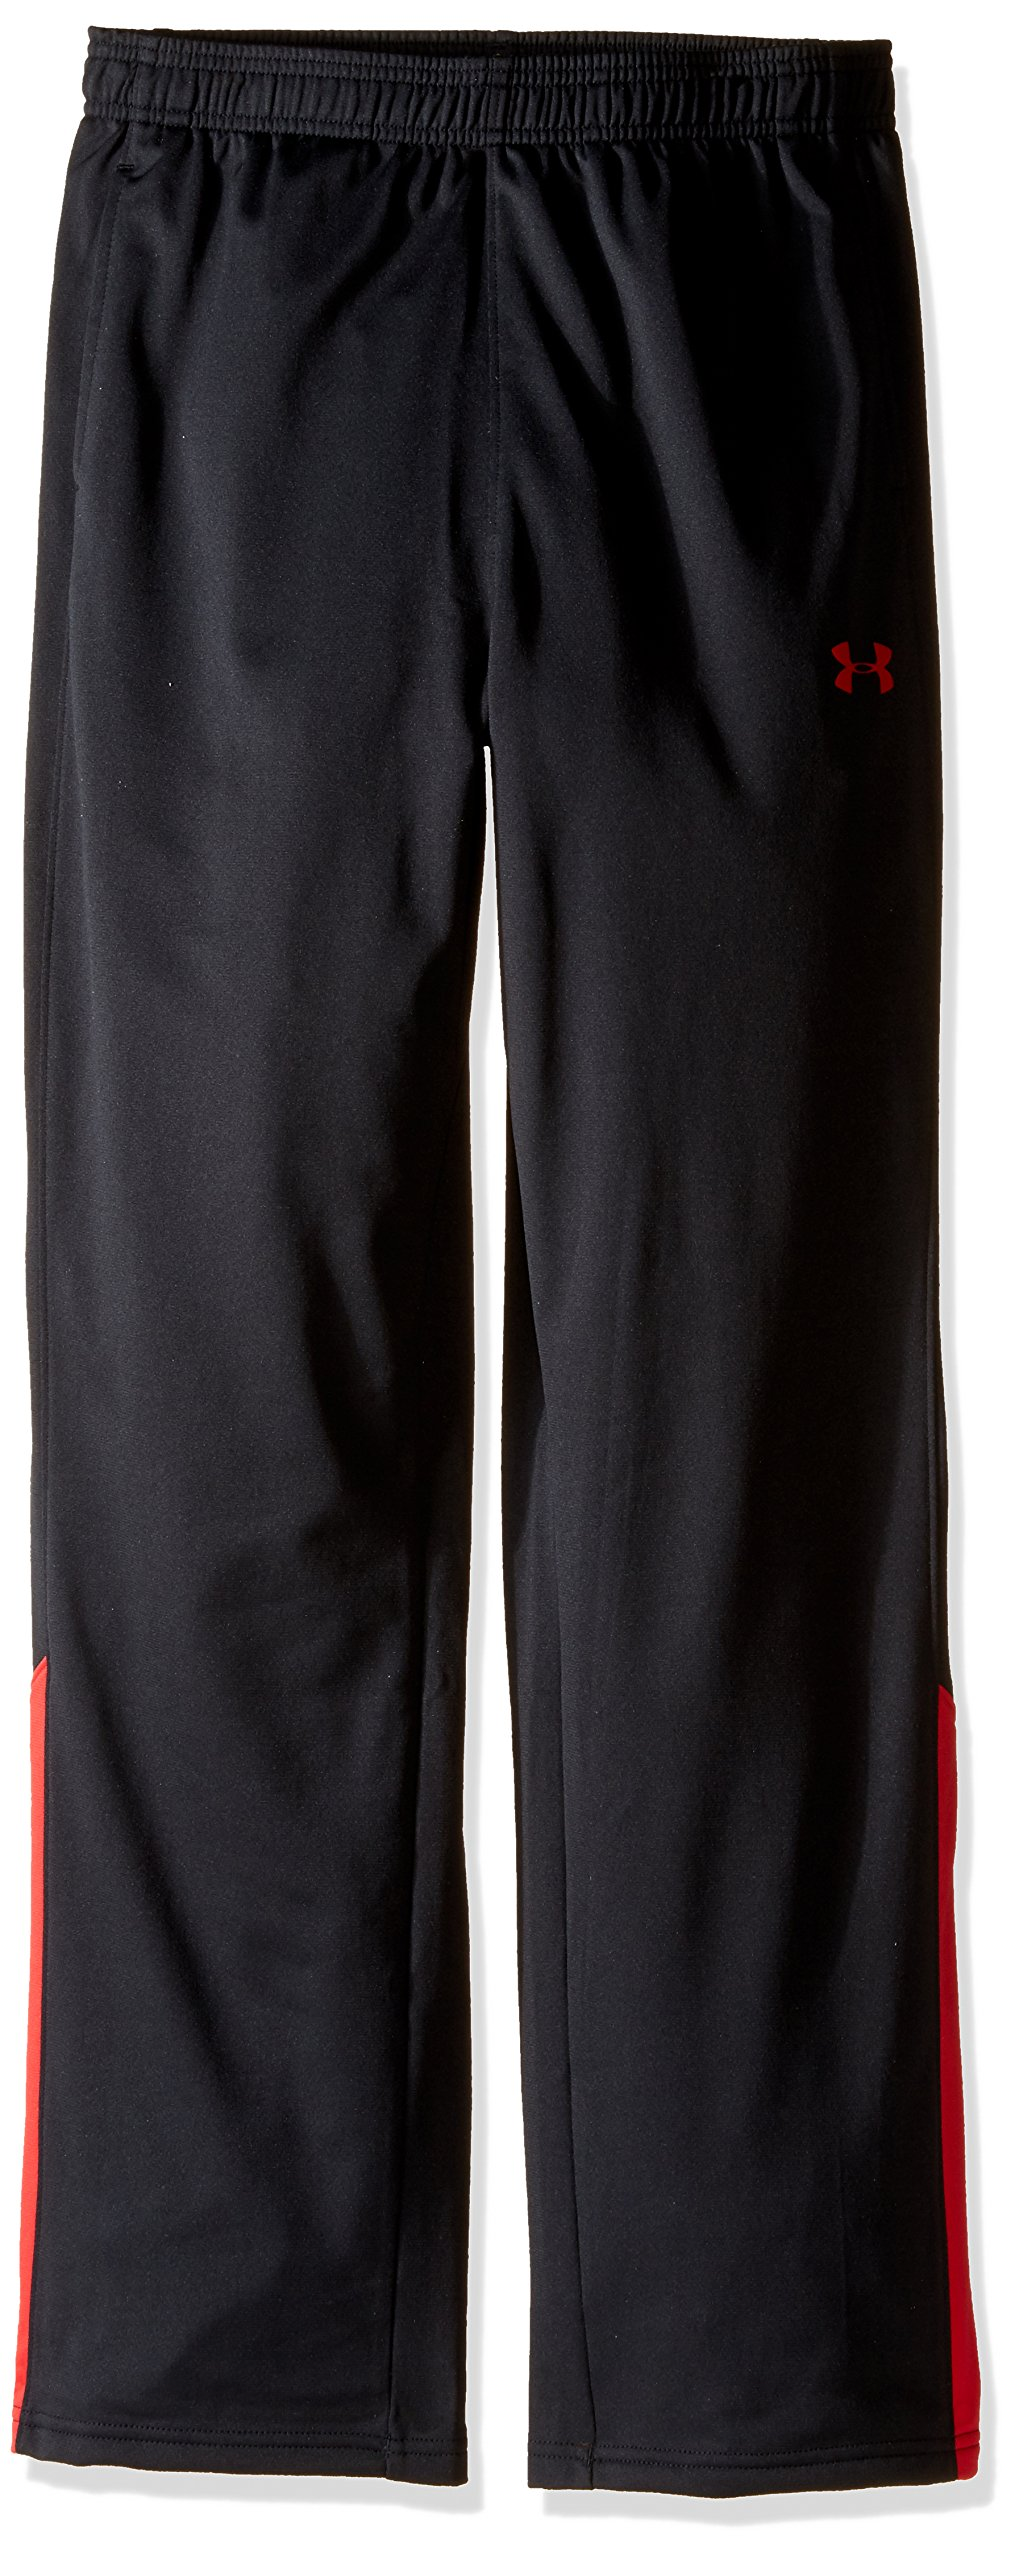 Under Armour Boys' Brawler Pants, Black/Red, Youth Large